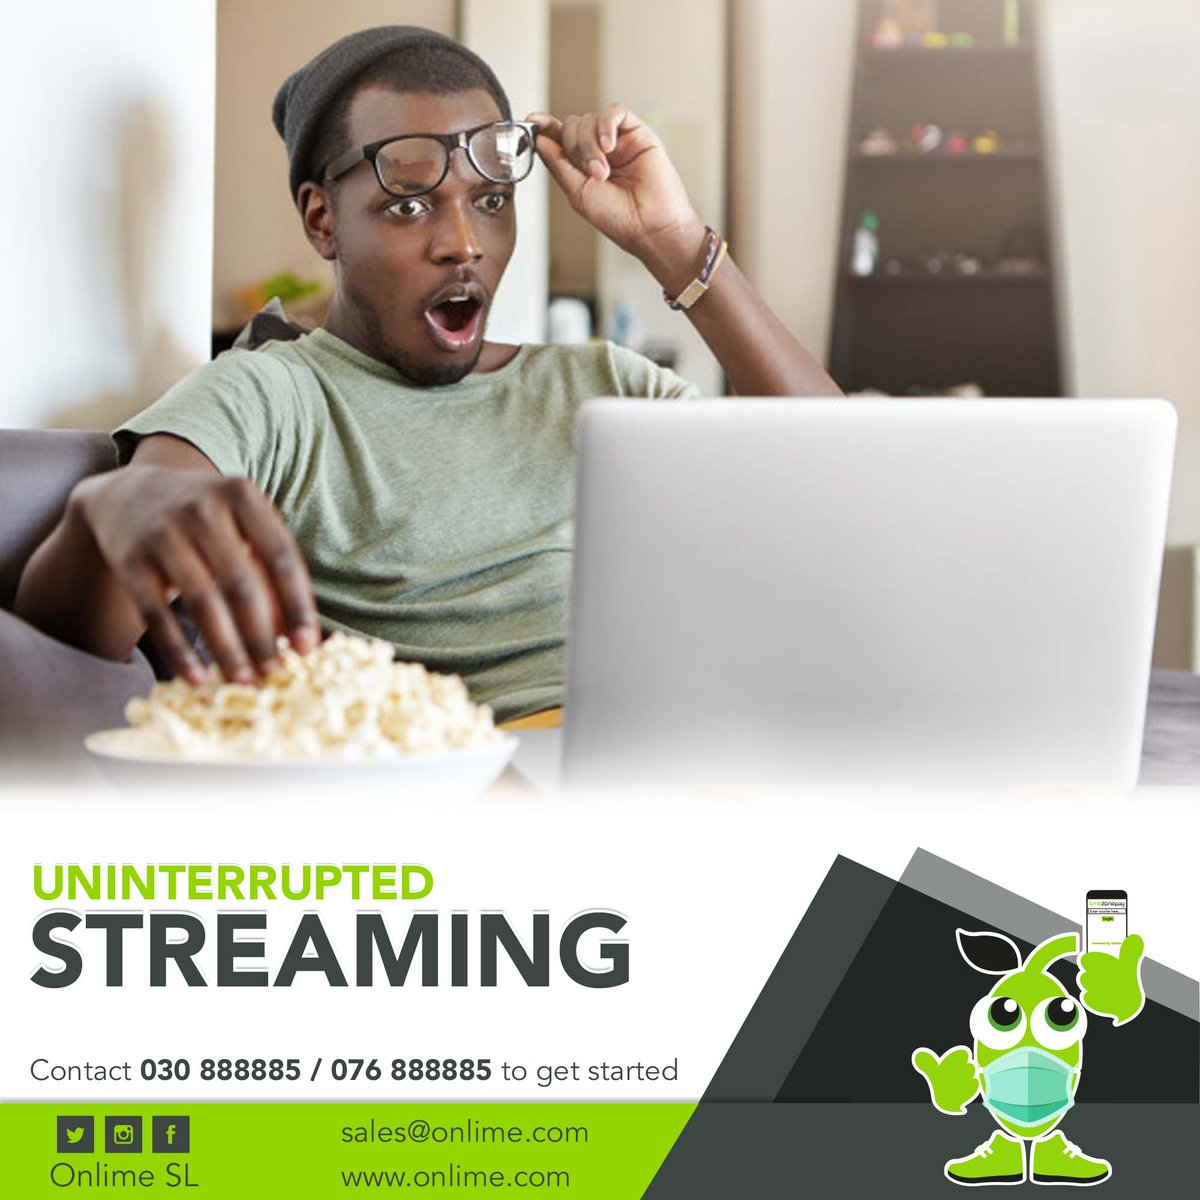 It's Fri-Yay! Don't get bored this weekend. Enjoy nonstop entertainment using #OnlimeInternet.  Call 076888885 / 030888885 to get started. #SierraLeone #Freetown #SaloneTwitter https://t.co/Sw2asfZ3ak